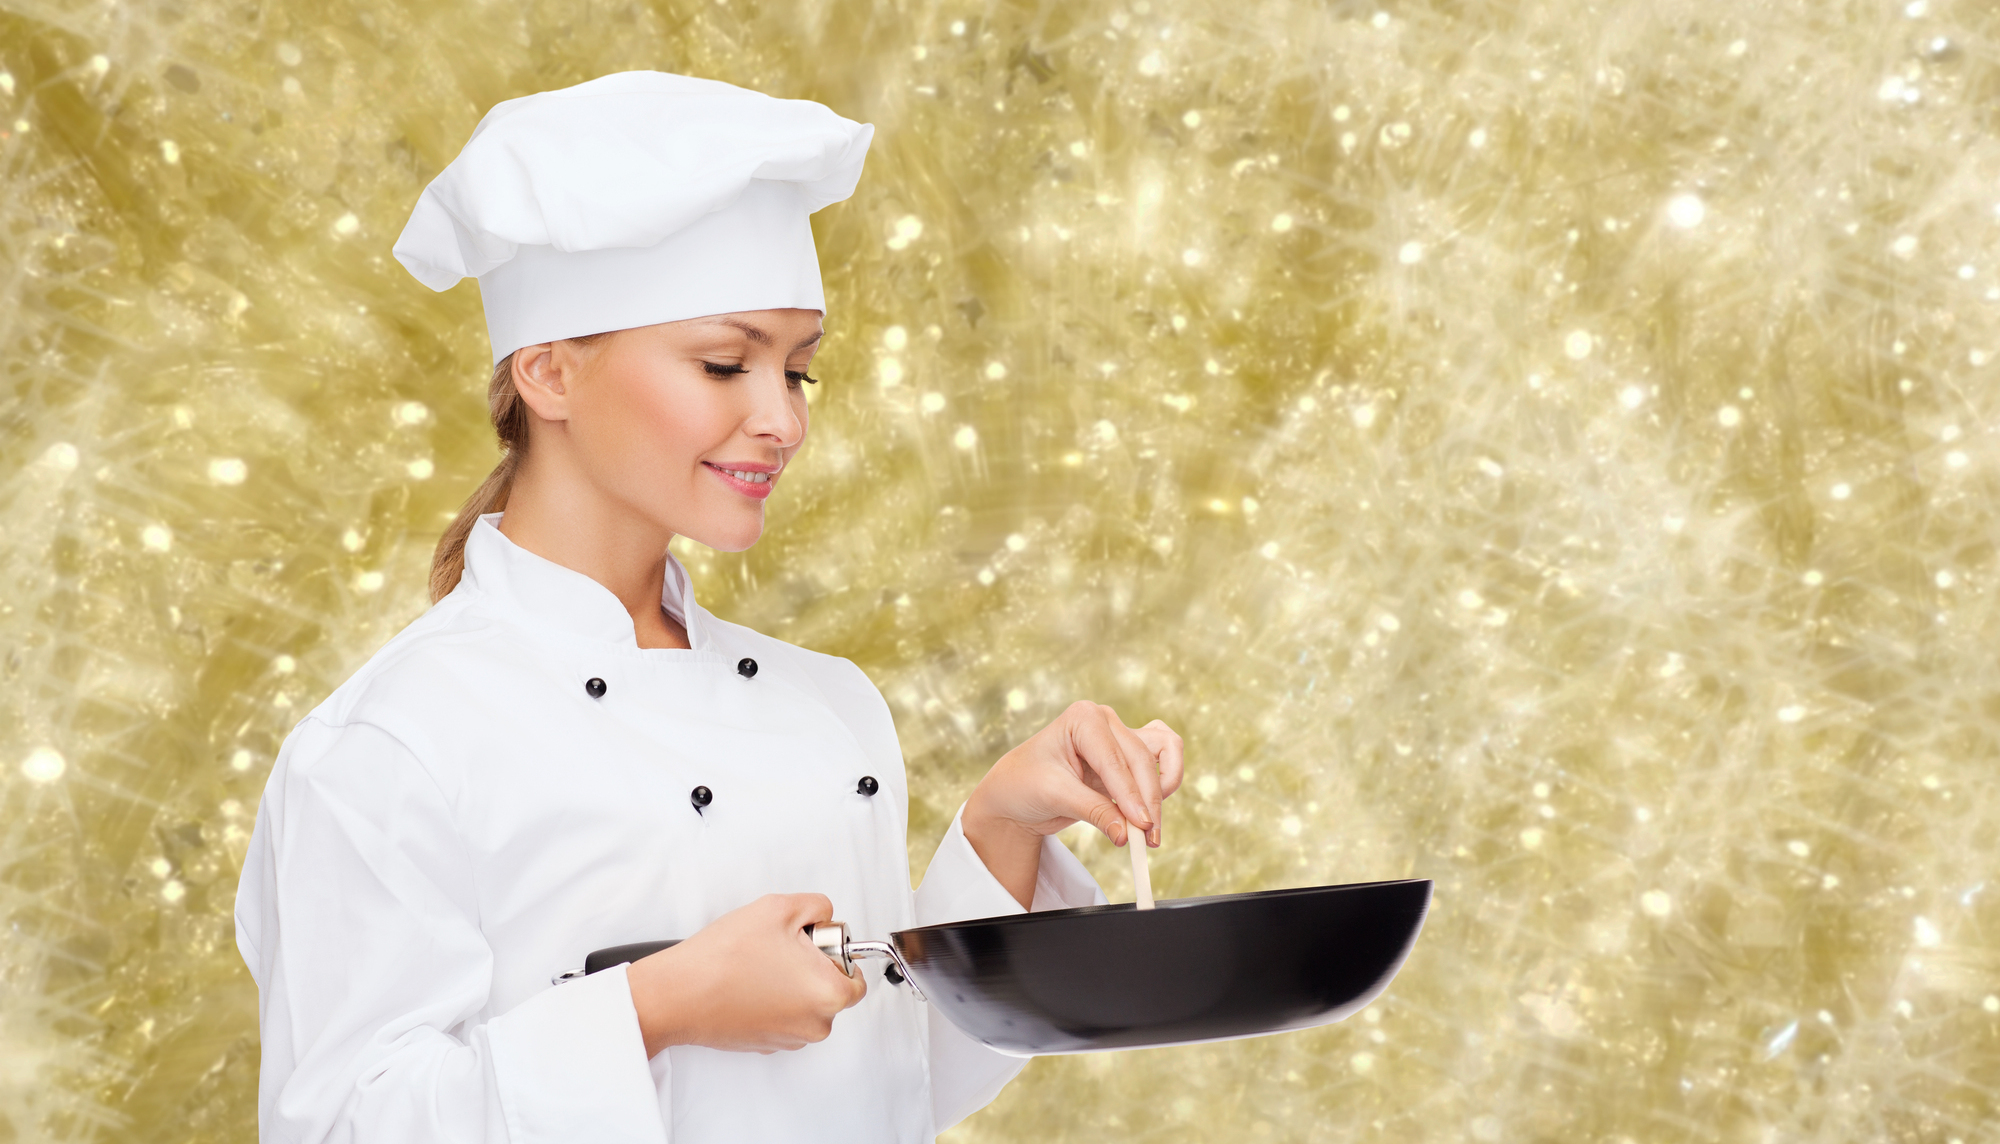 smiling female chef with pan and spoon